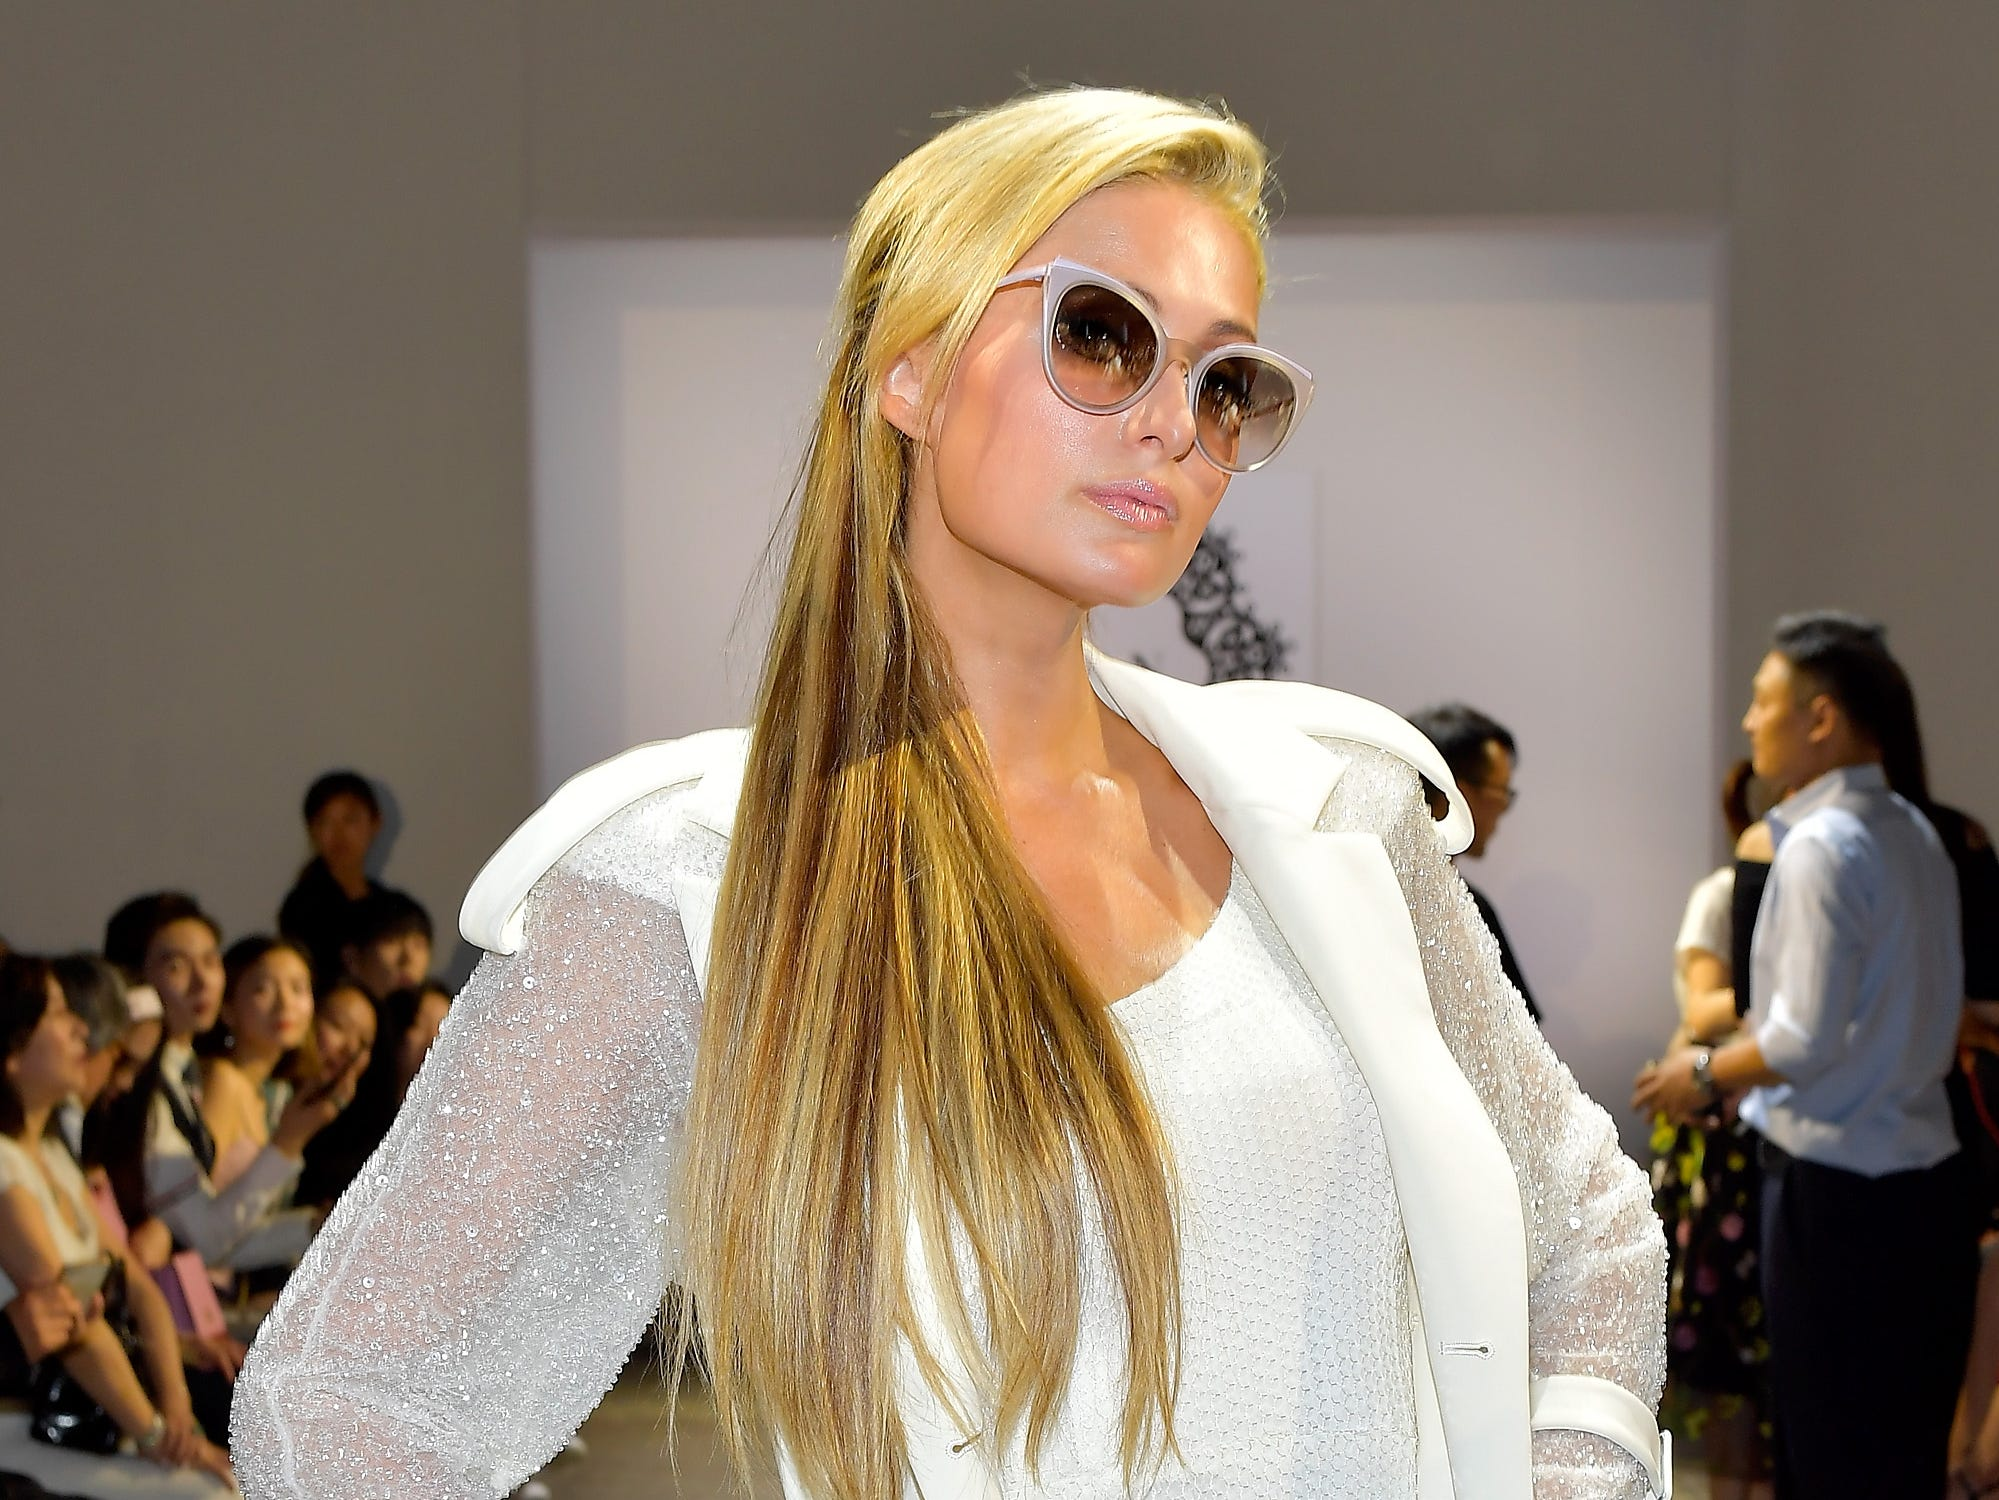 Paris Hilton attends the Lan Yu front row during New York Fashion Week: The Shows at Industria Studios on September 6, 2018 in New York City.  (Photo by Roy Rochlin/Getty Images for NYFW: The Shows) ORG XMIT: 775215618 ORIG FILE ID: 1027913528